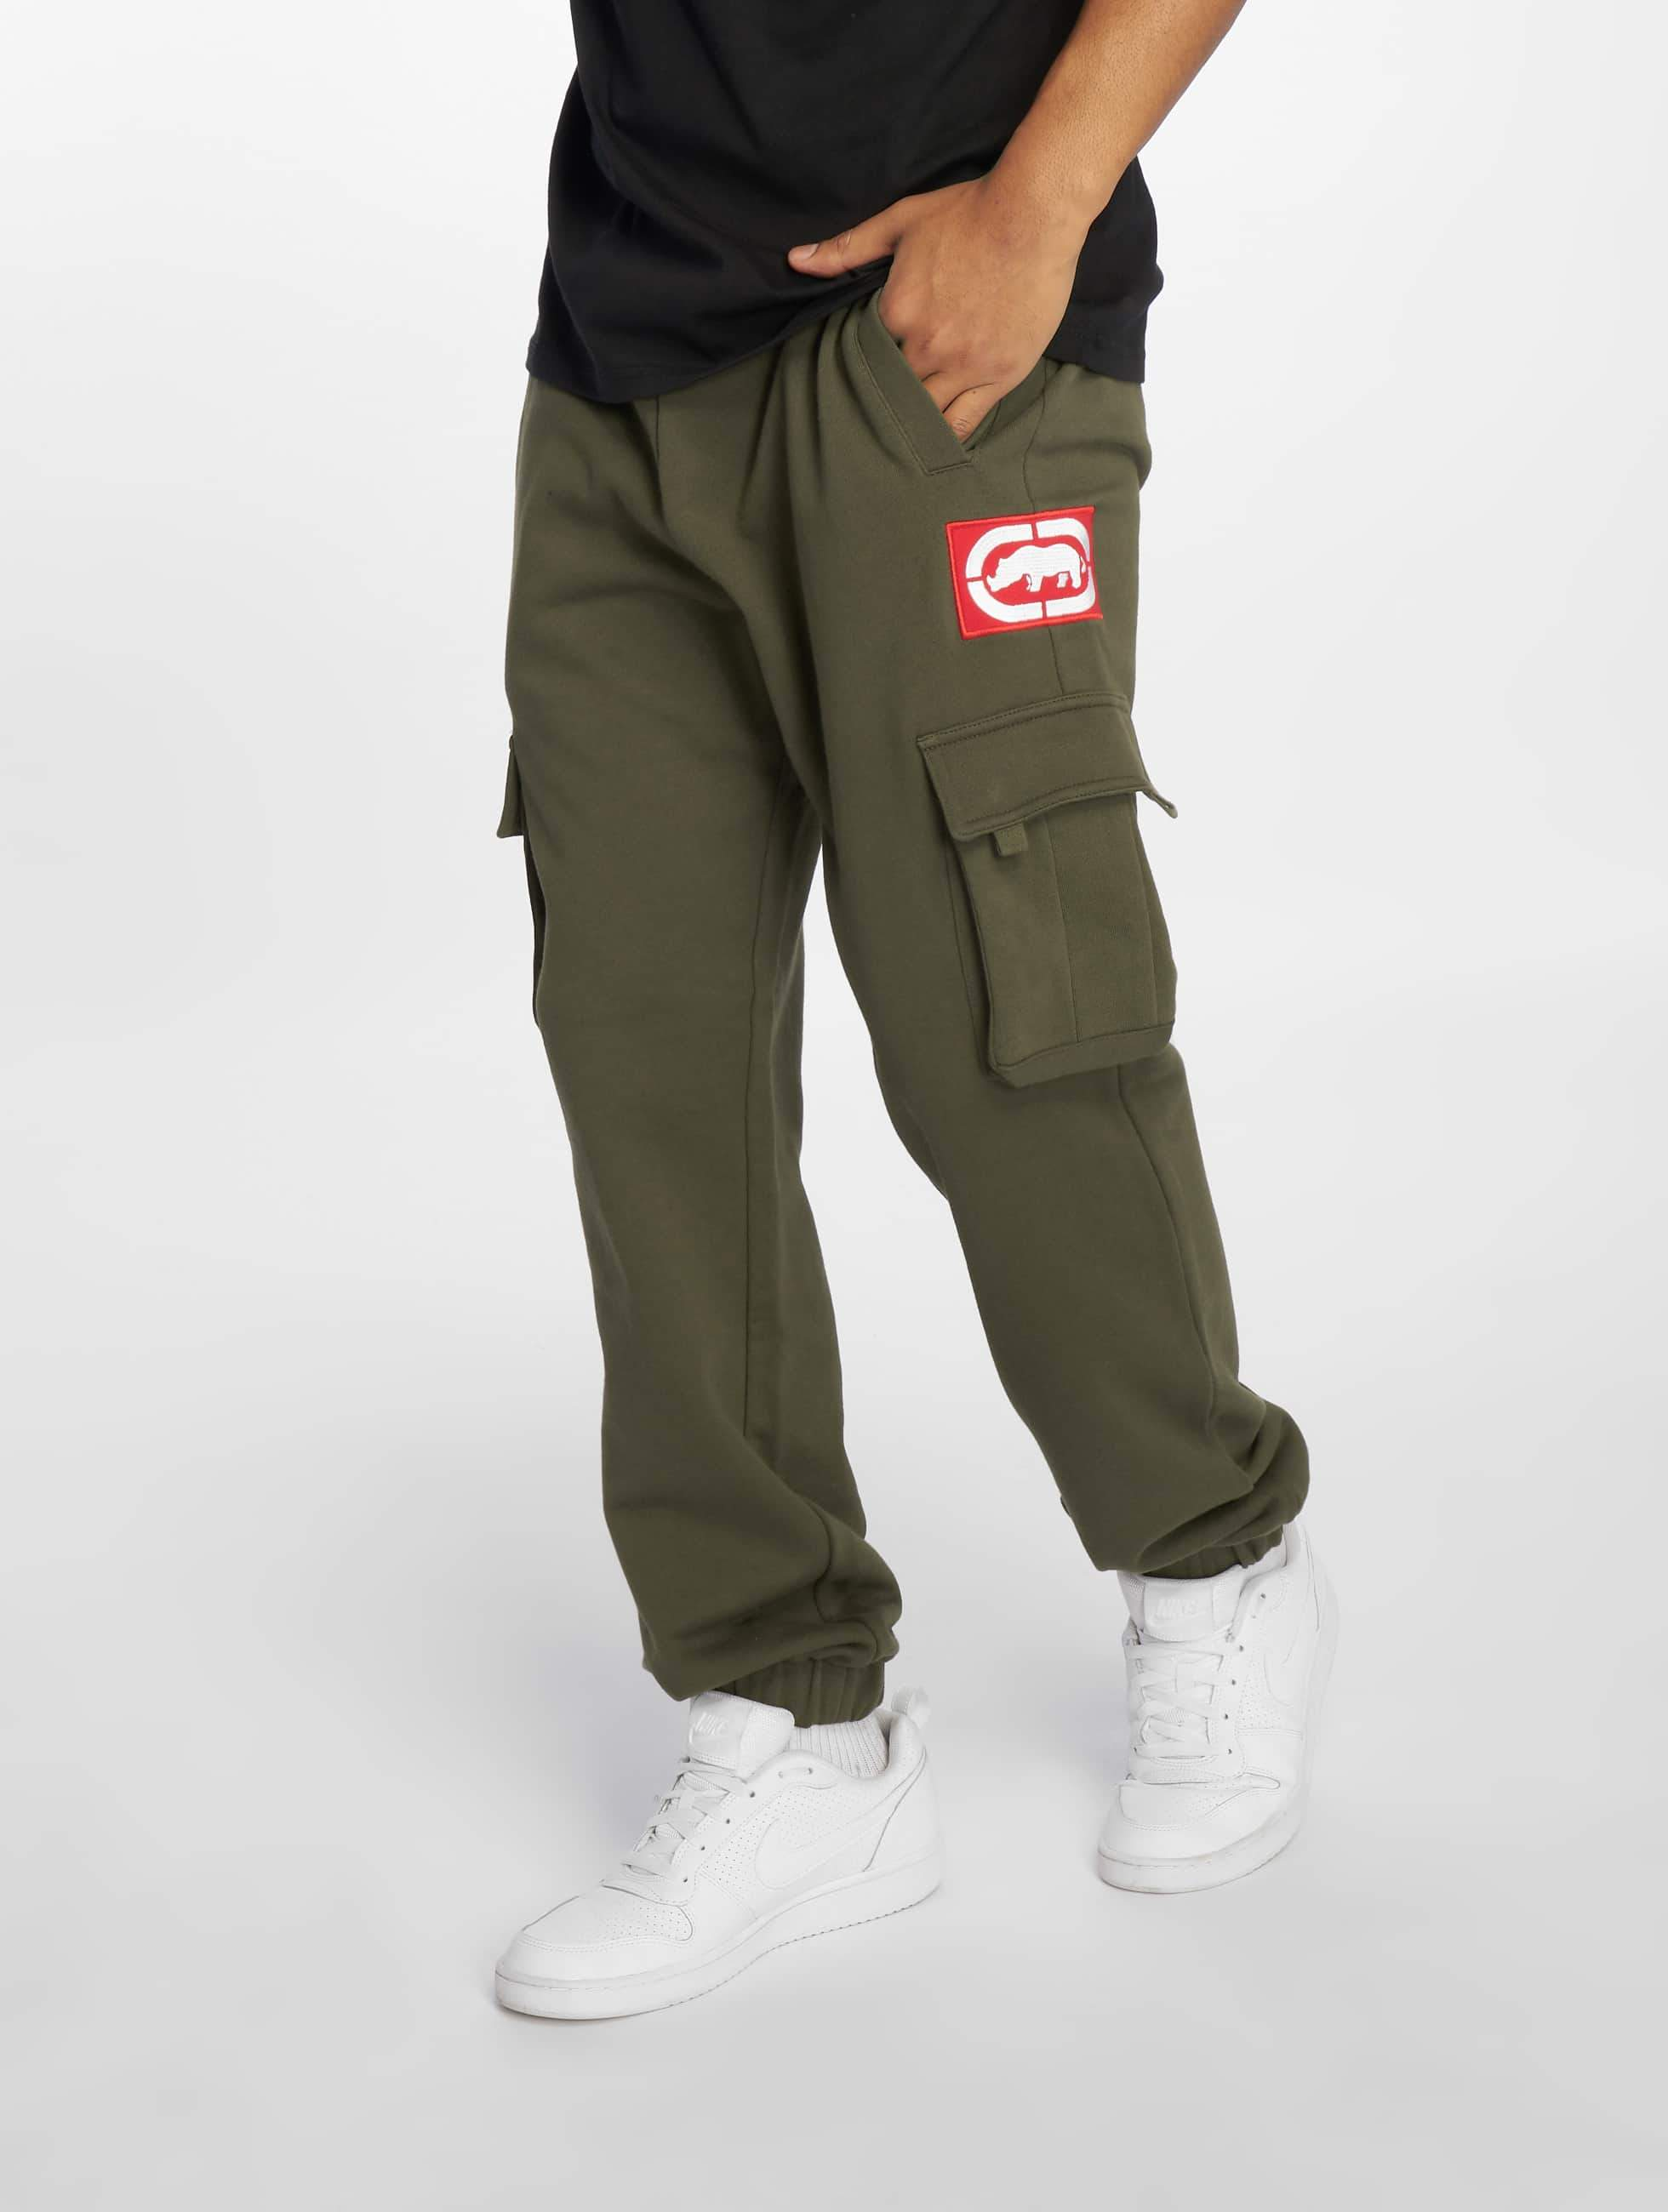 Ecko Unltd. / Sweat Pant Inglewood in olive 3XL